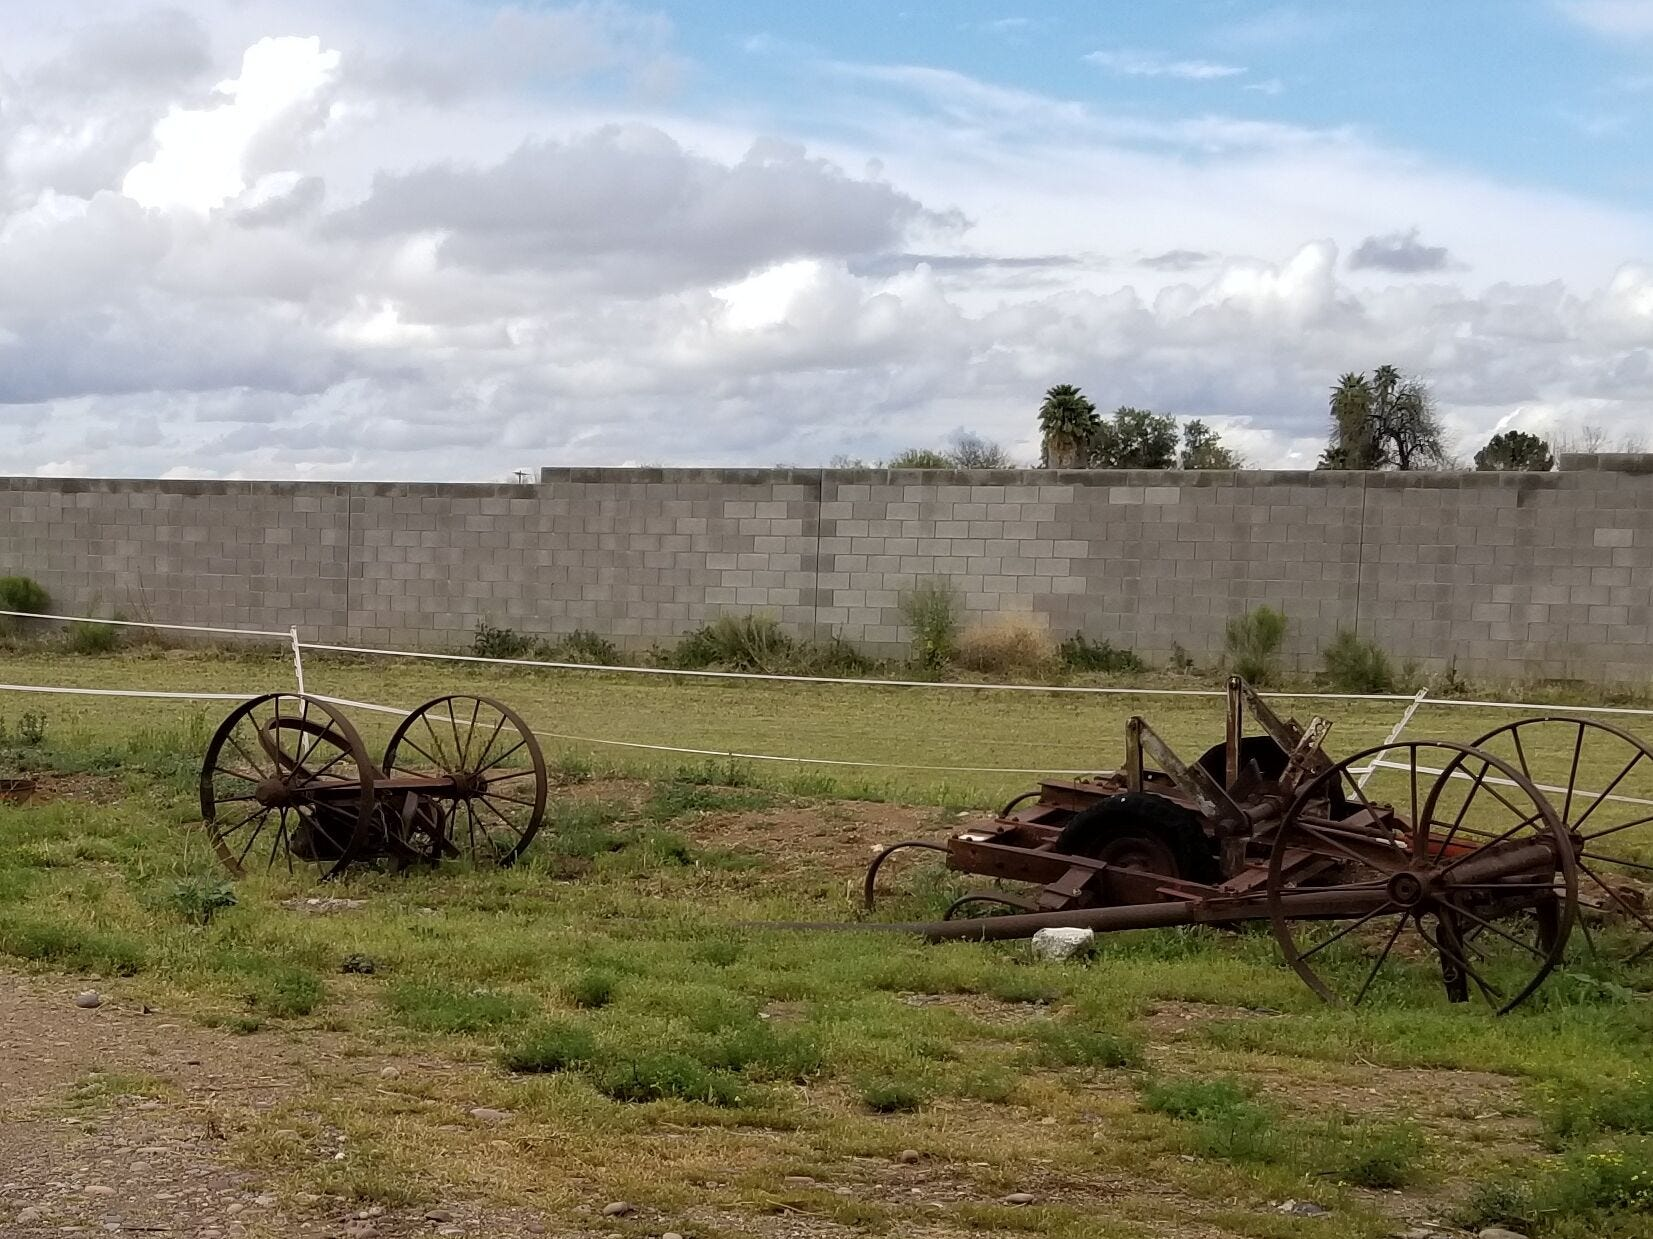 Old farm equipment dots the landscape, a reminder of the Cheatham family's long farming history in Laveen.